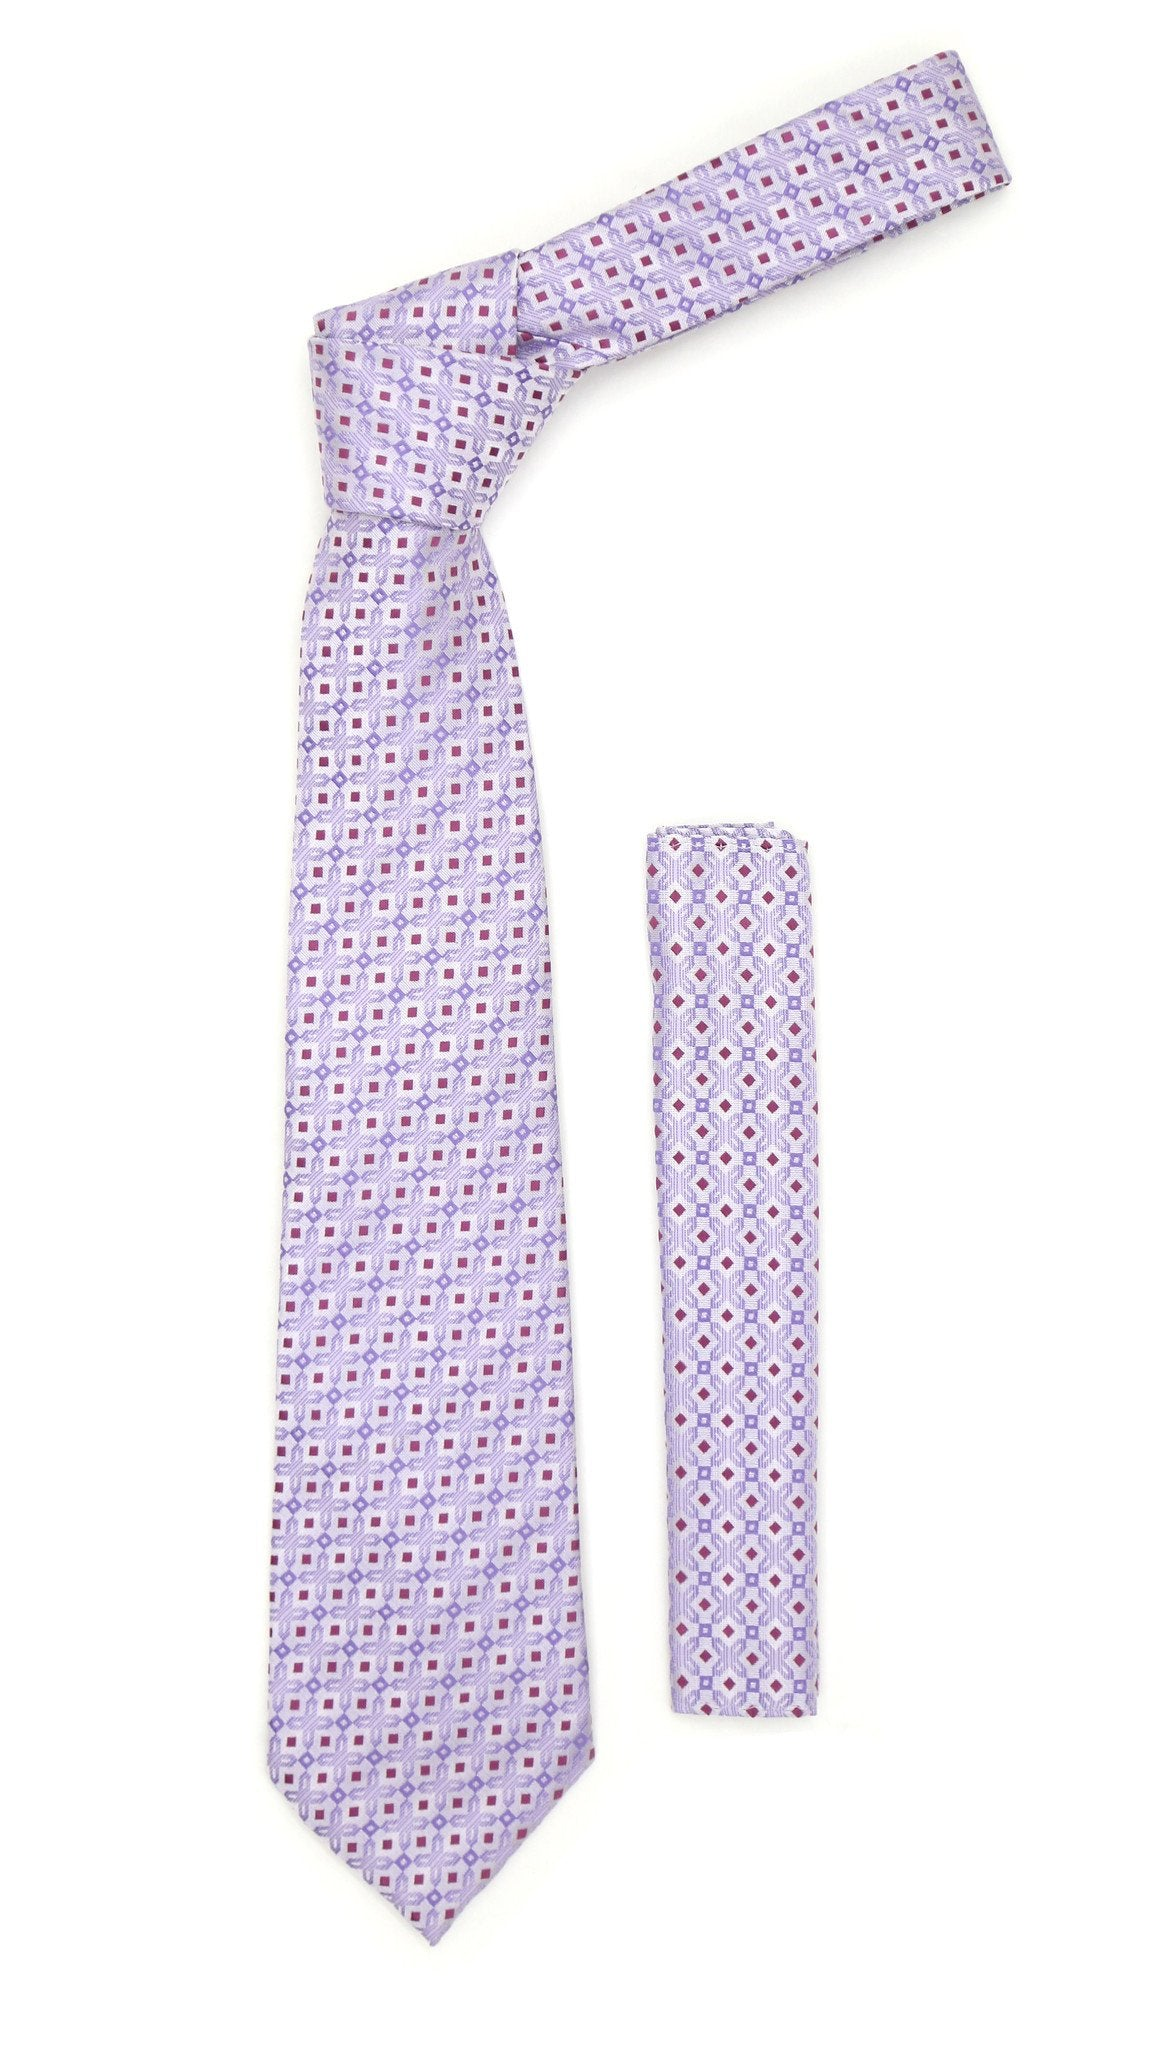 Lavender Purple Geometric Necktie with Handkerchief Set - Giorgio's Menswear